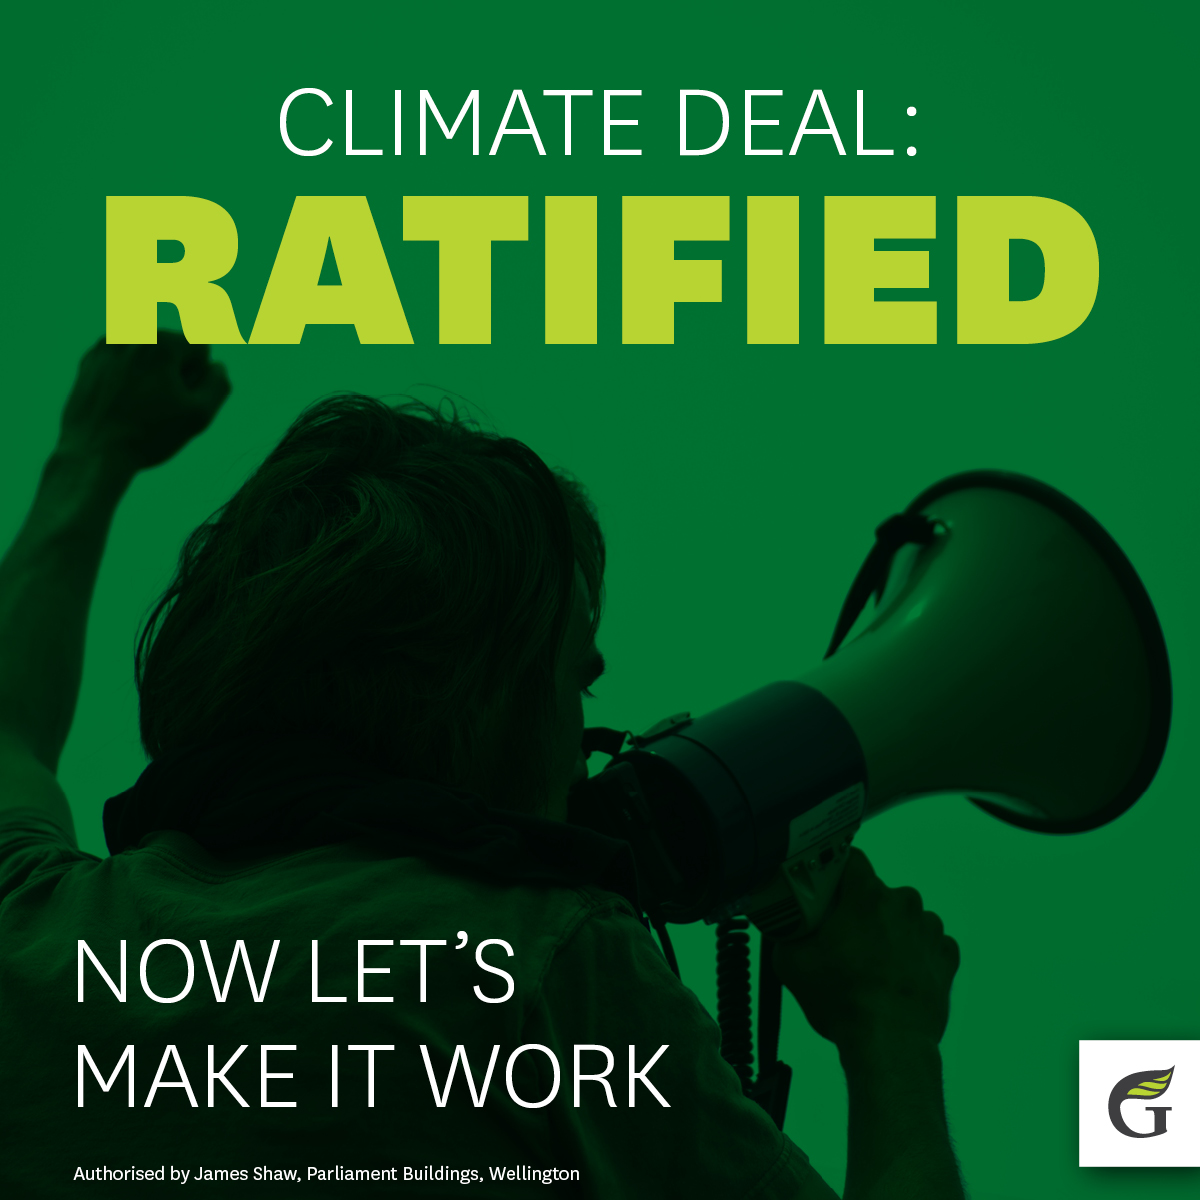 Climate_Deal_Ratified.jpg